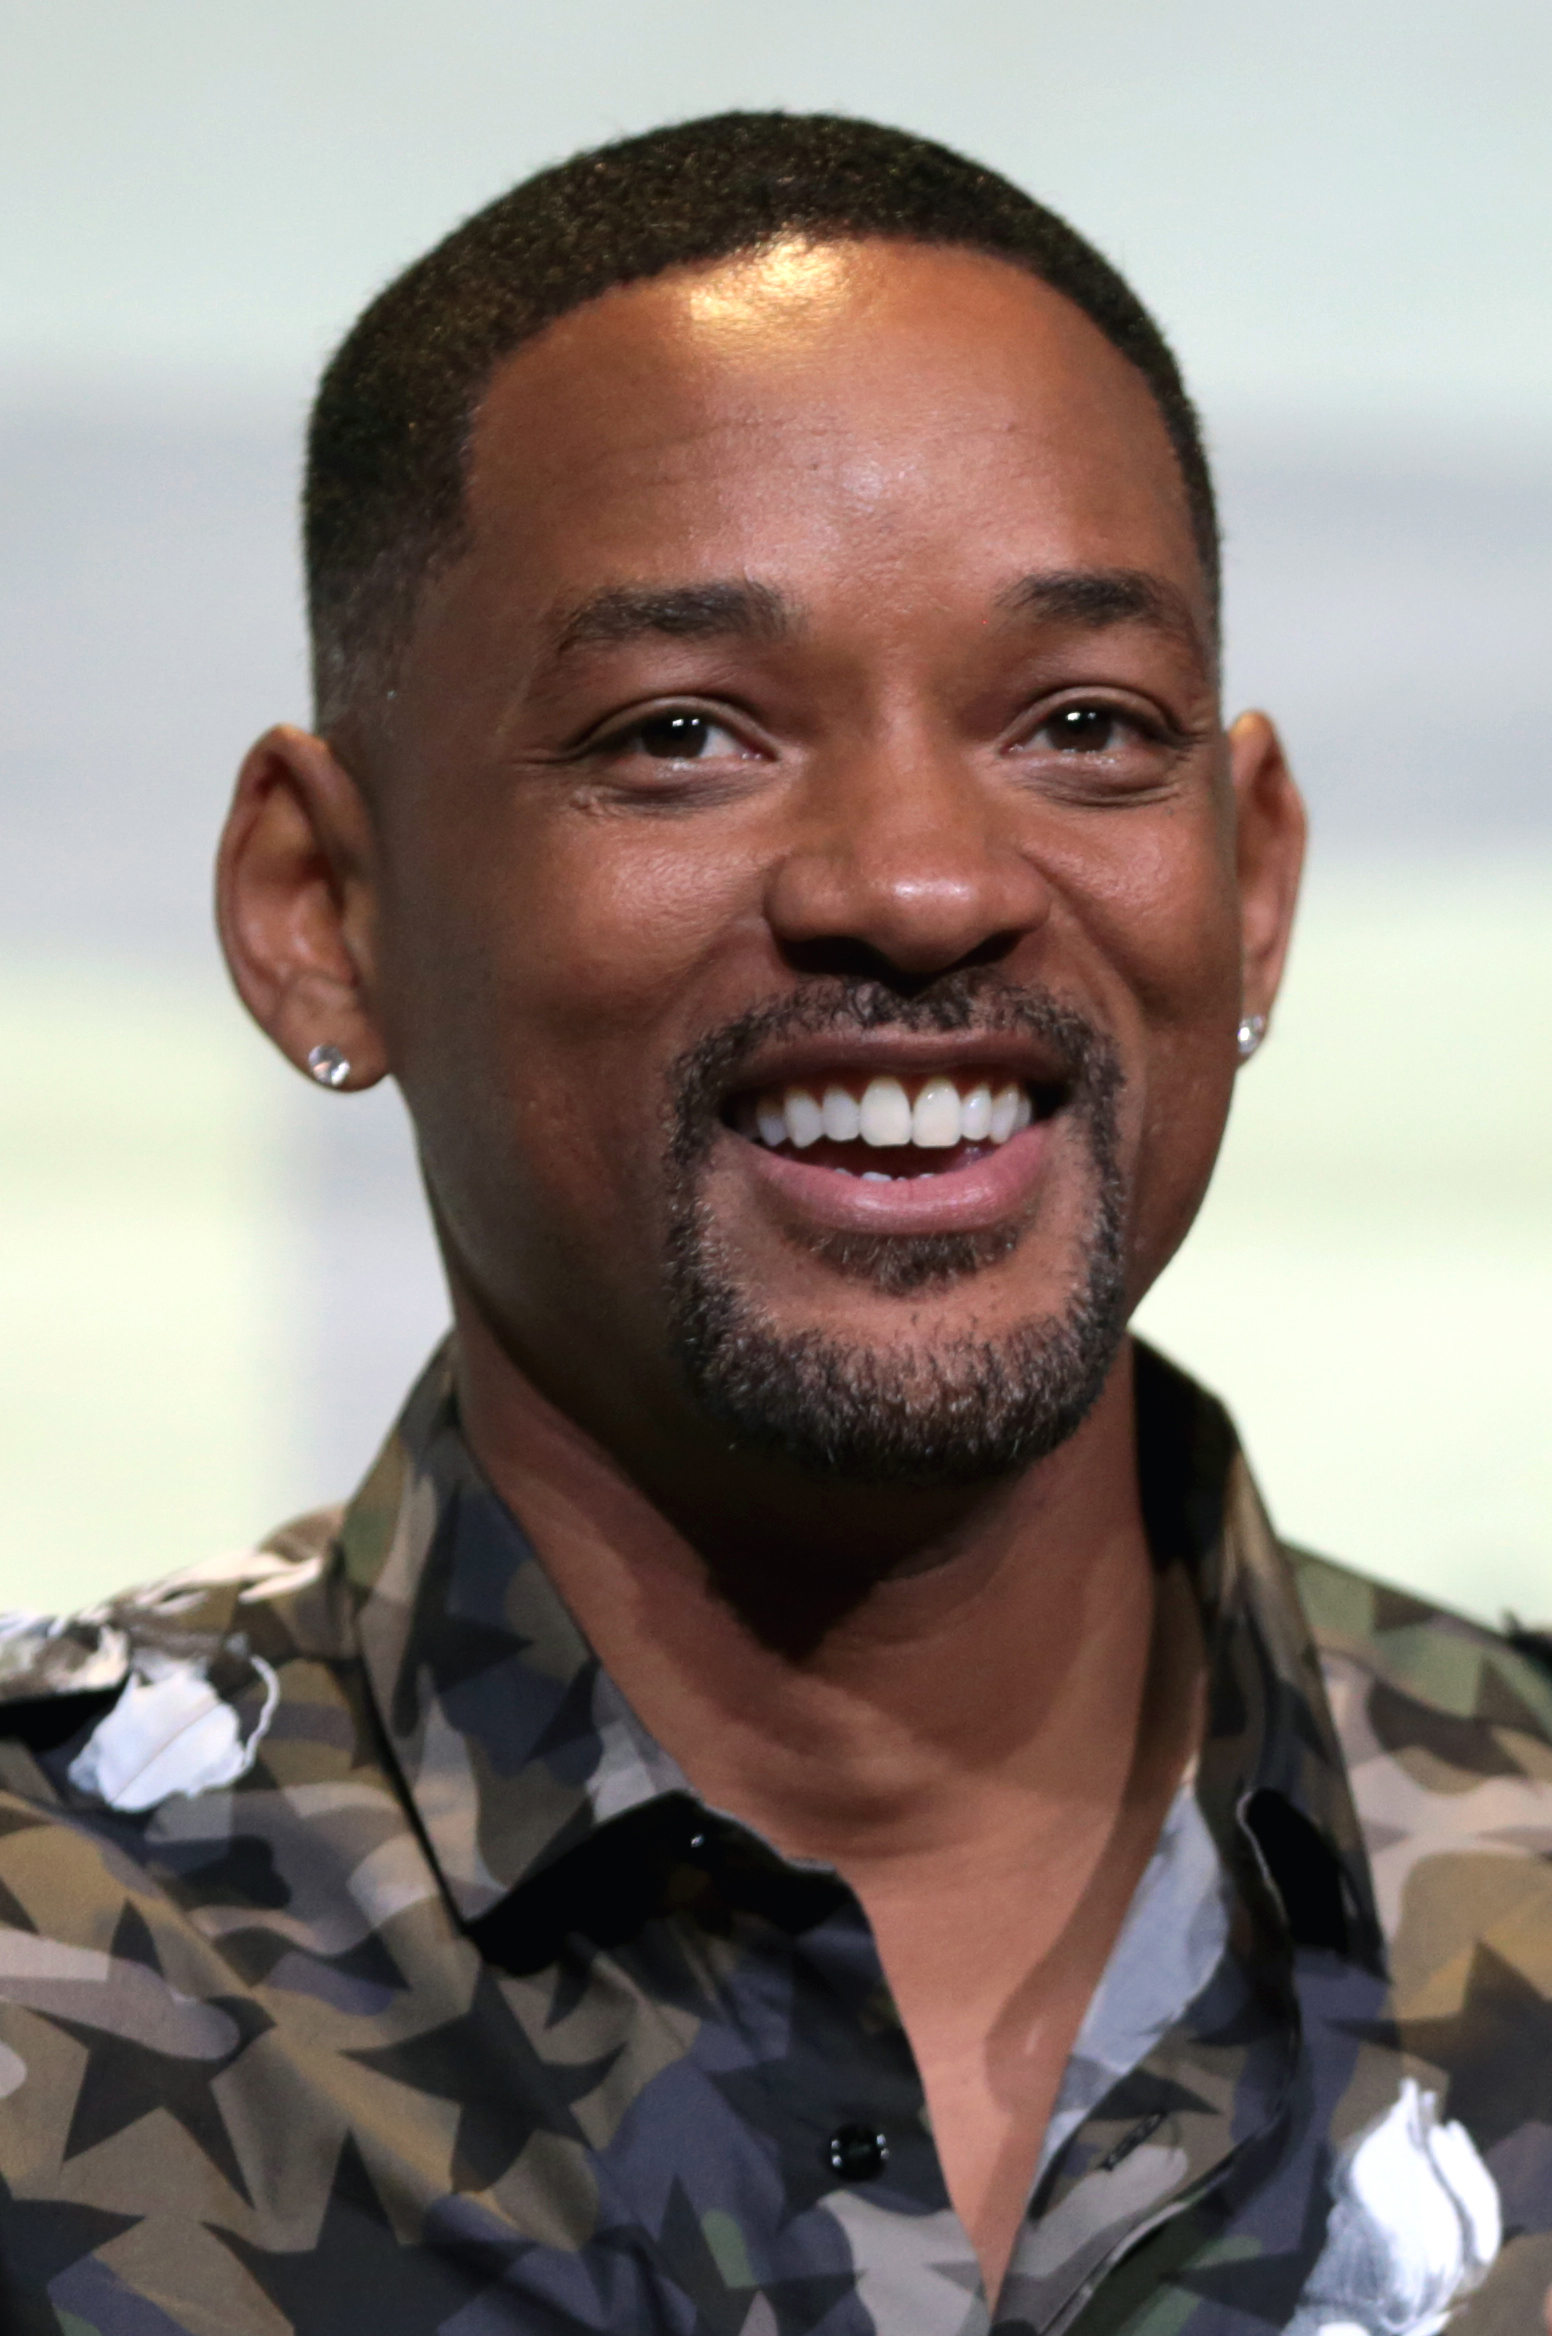 Depiction of Will Smith